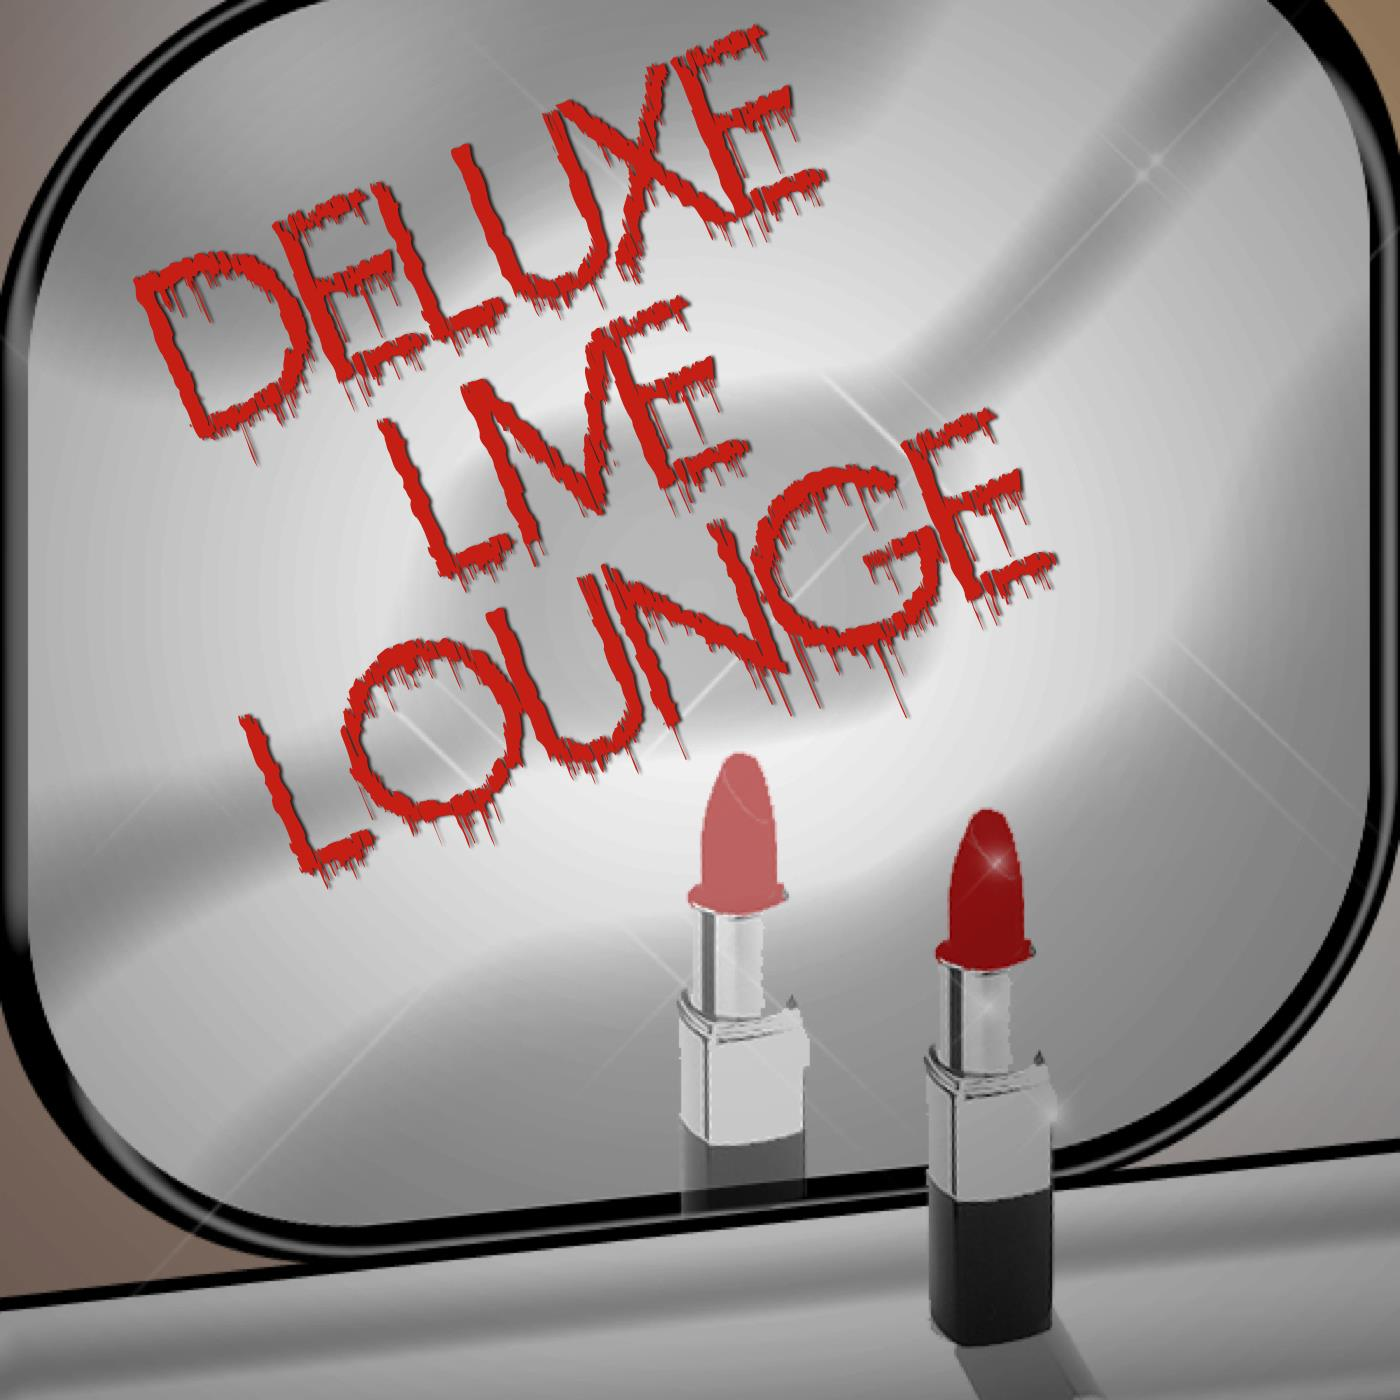 Deluxe Live Lounge